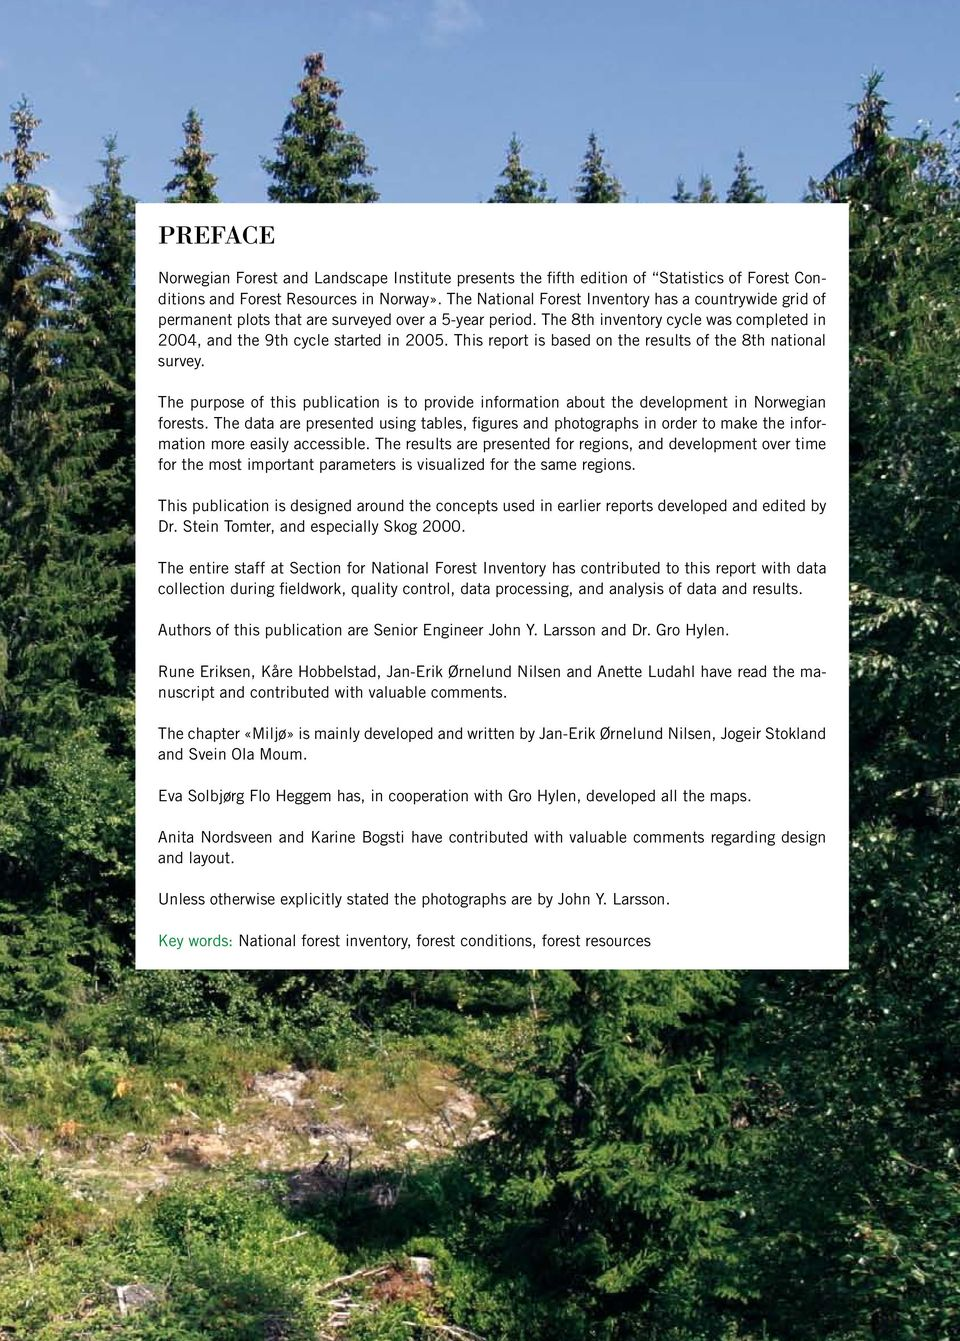 This report is based on the results of the 8th national survey. The purpose of this publication is to provide information about the development in Norwegian forests.